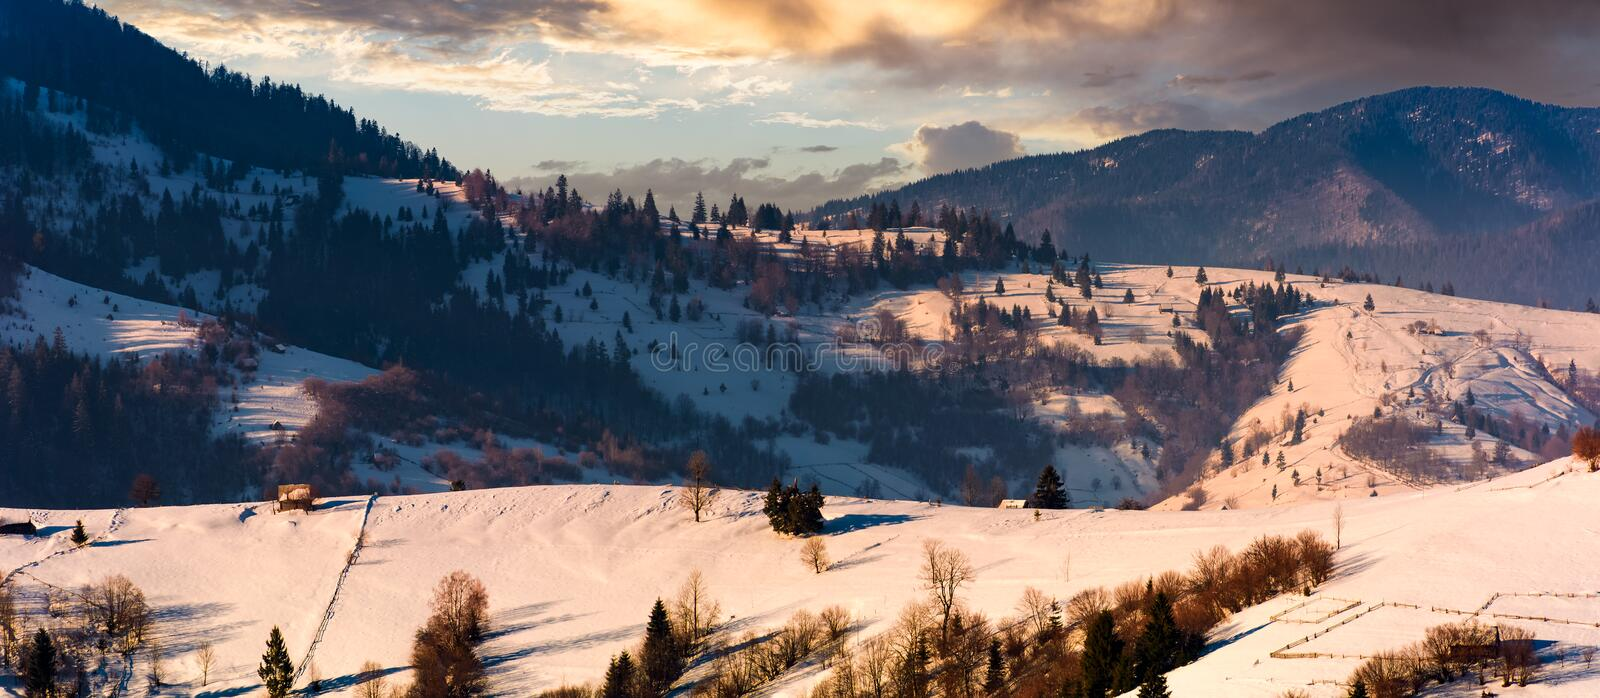 Gorgeous winter landscape in mountainous rural are royalty free stock photo